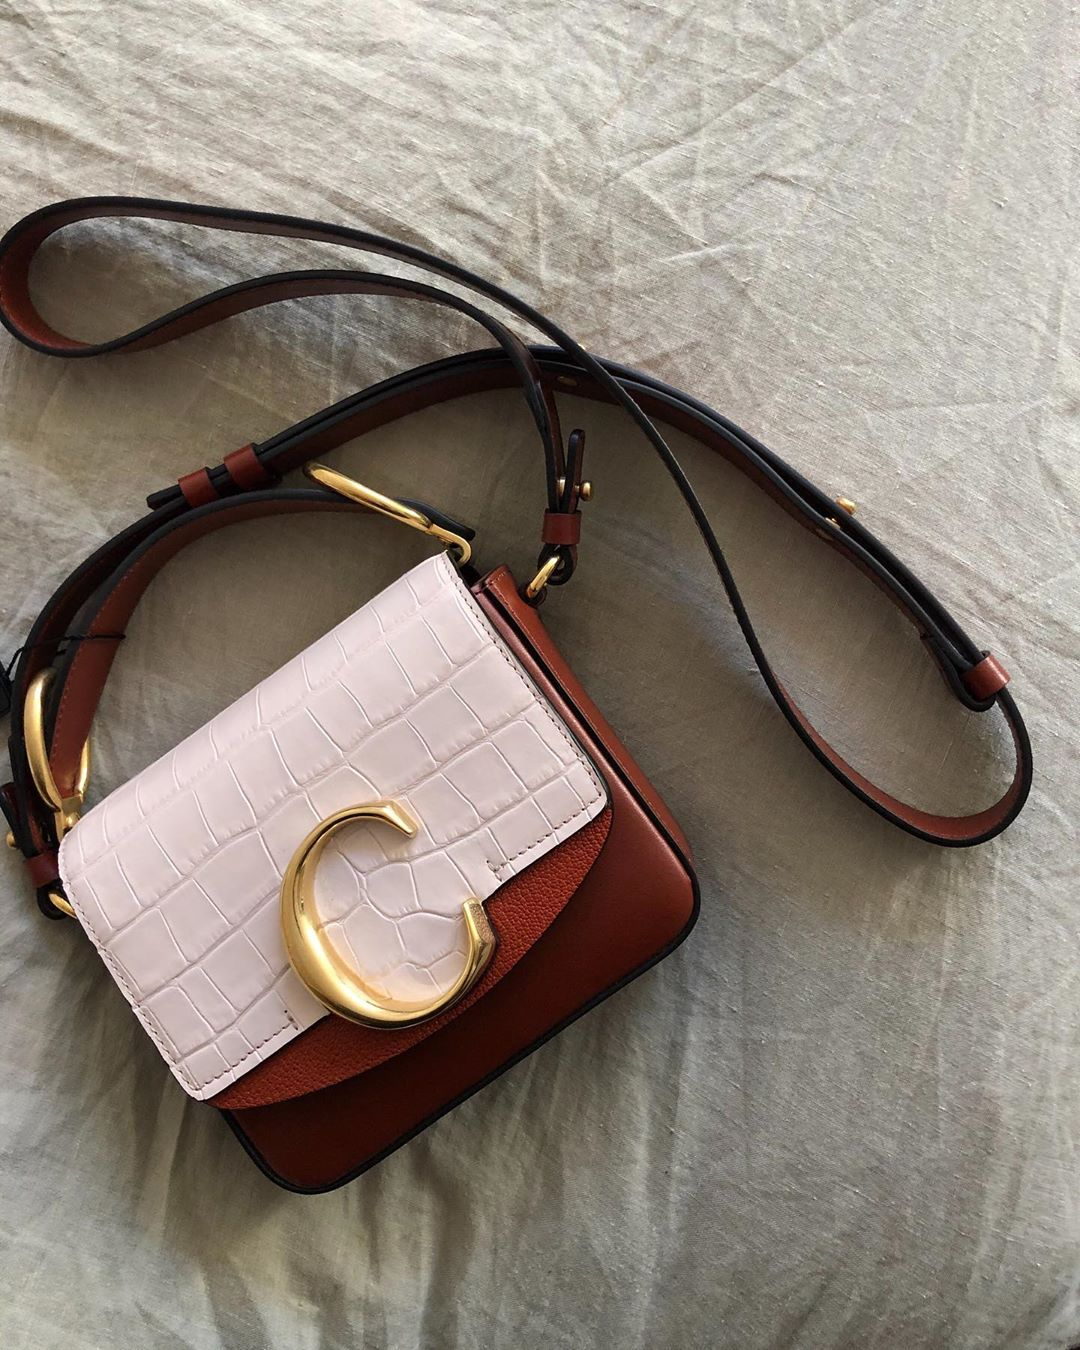 chloe-c-mini-leather-shoulder-bag-jeanette-madsen-instagram